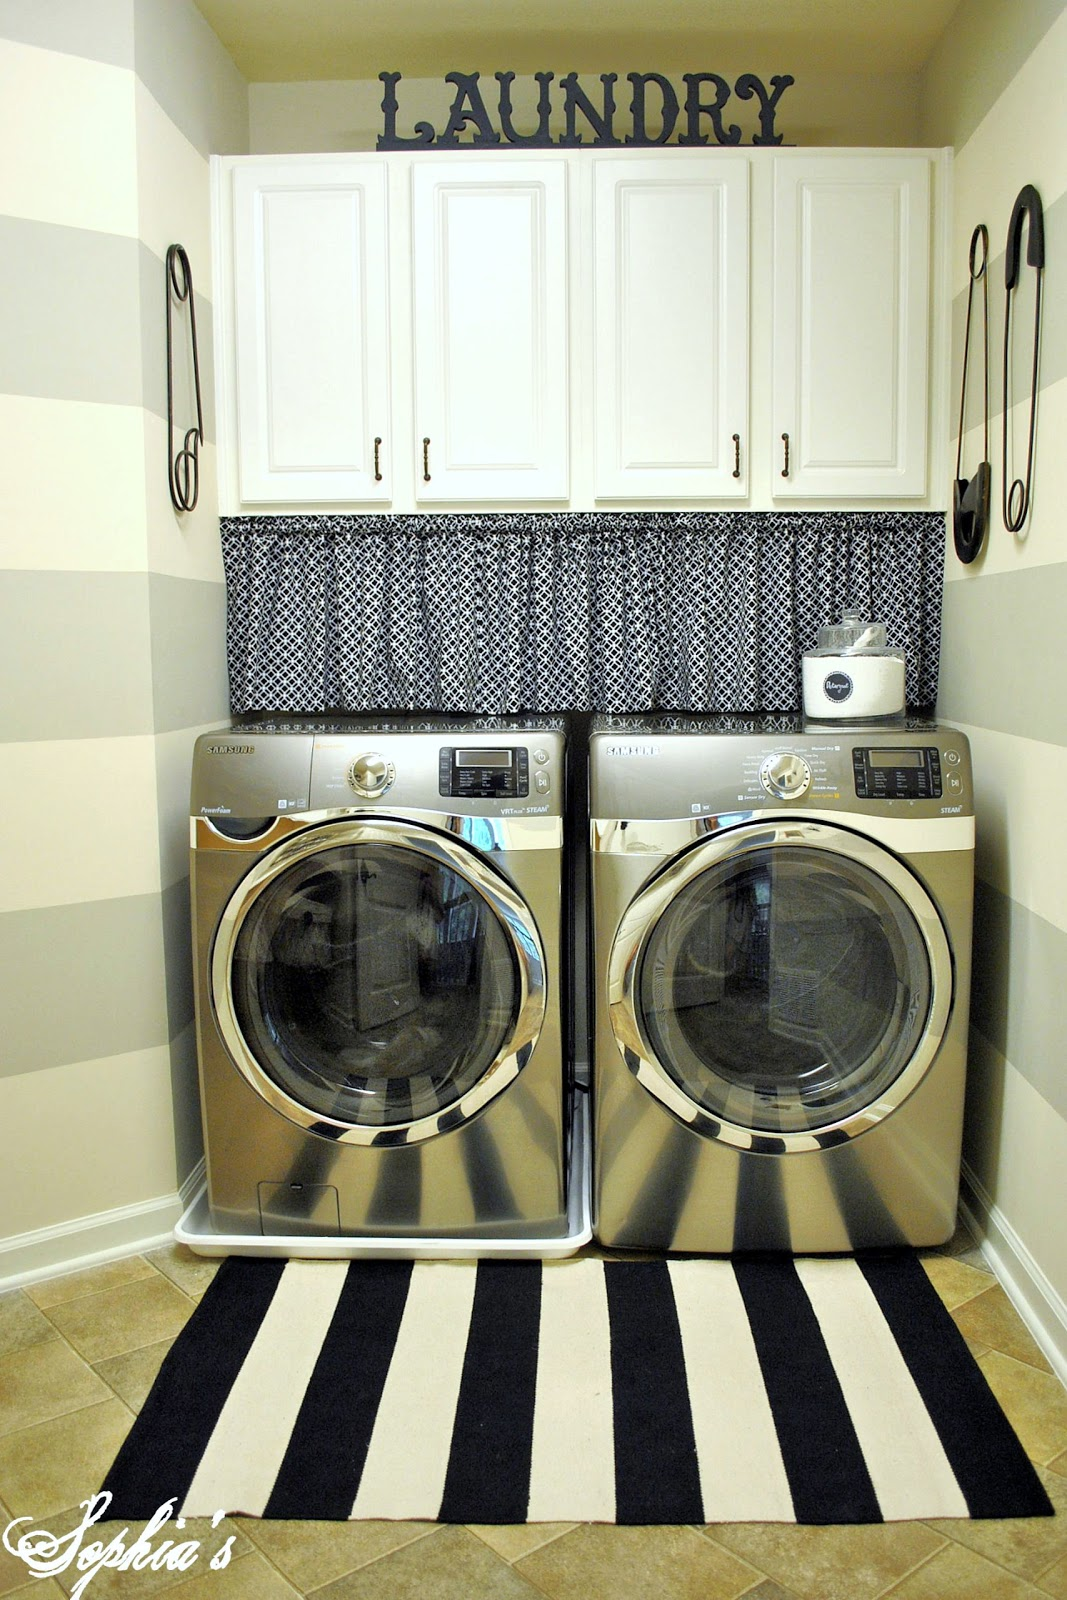 Vintage-Inspired Laundry Room